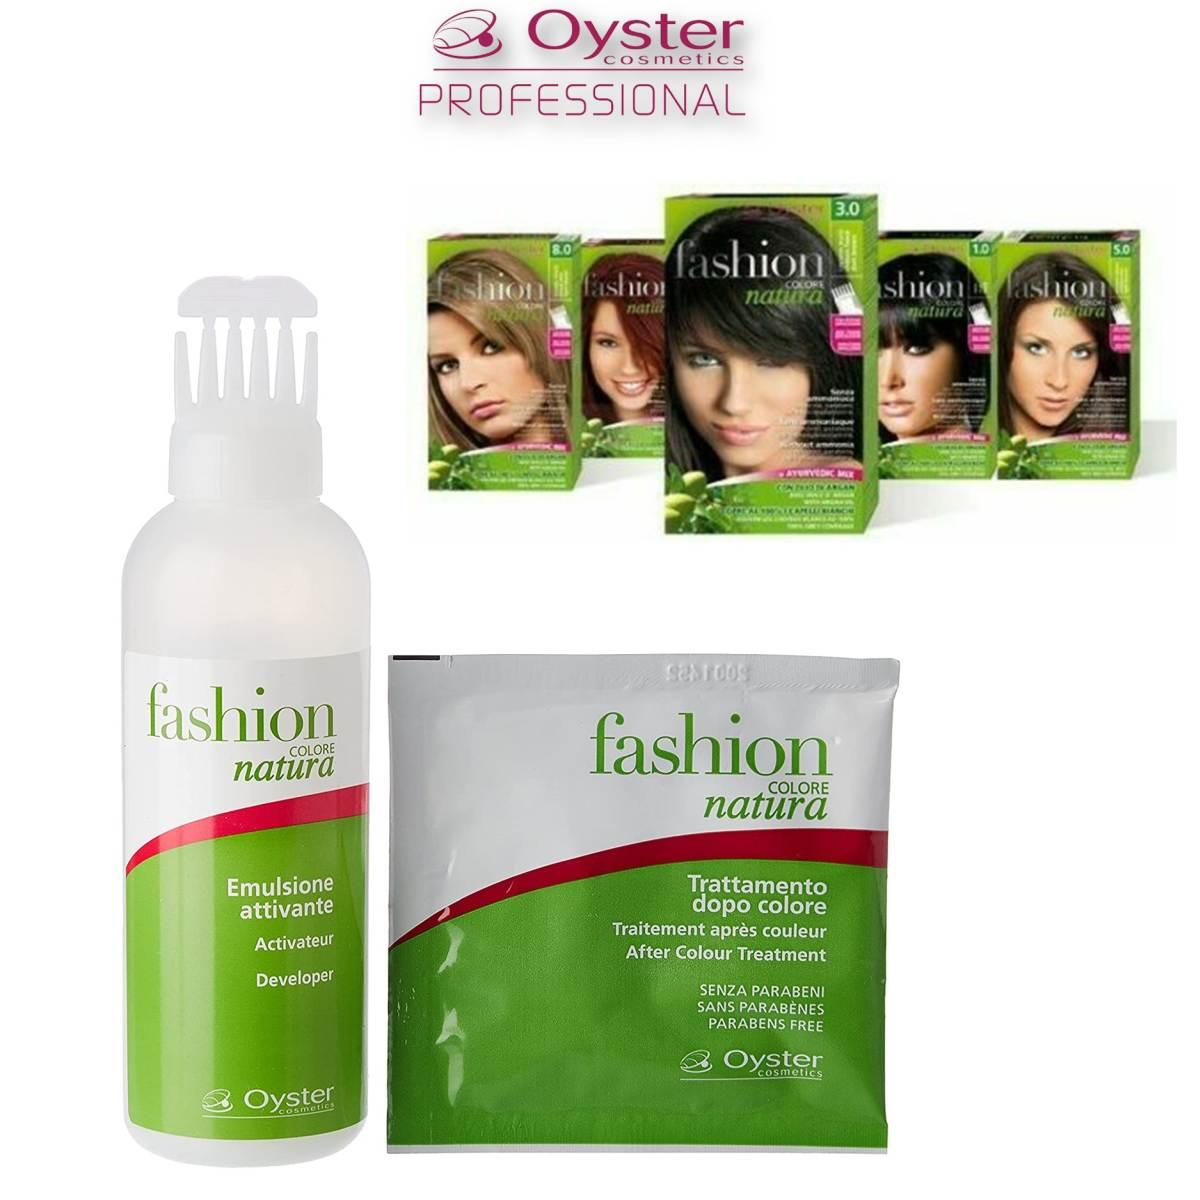 Oyster Kit Fashion Natura 6/44 ( Ramato Intenso ) 50ml + 50ml